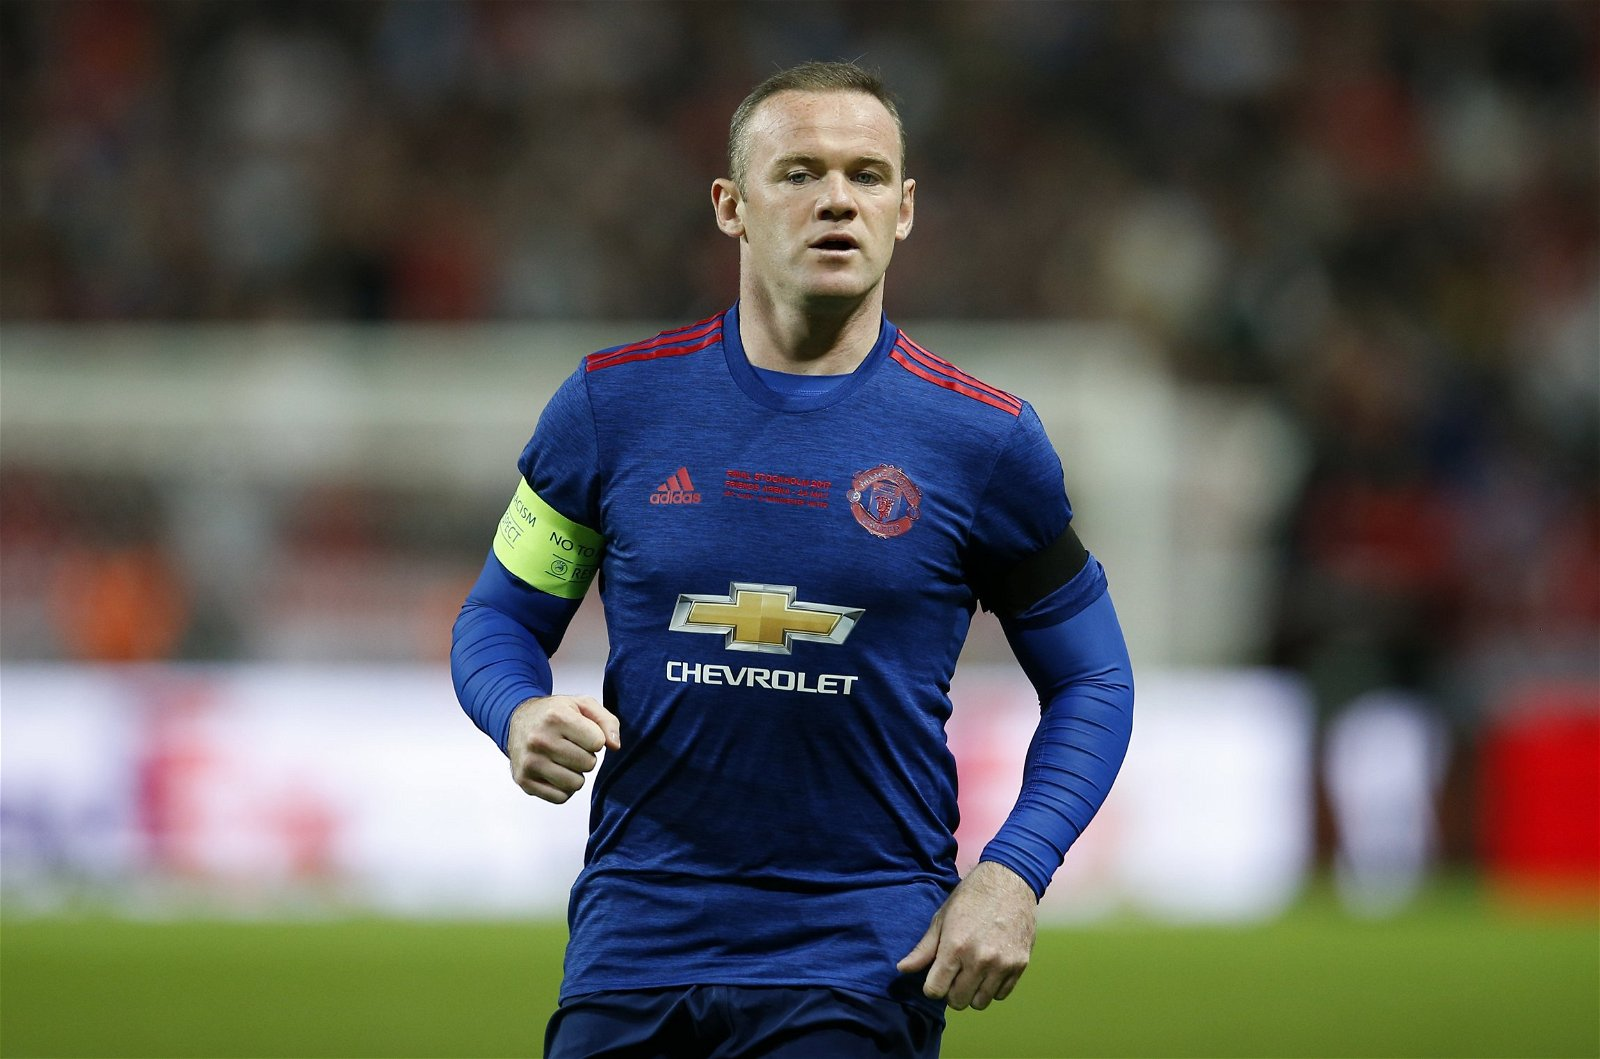 Transfers that shook the world: Manchester United buy Wayne Rooney from Everton